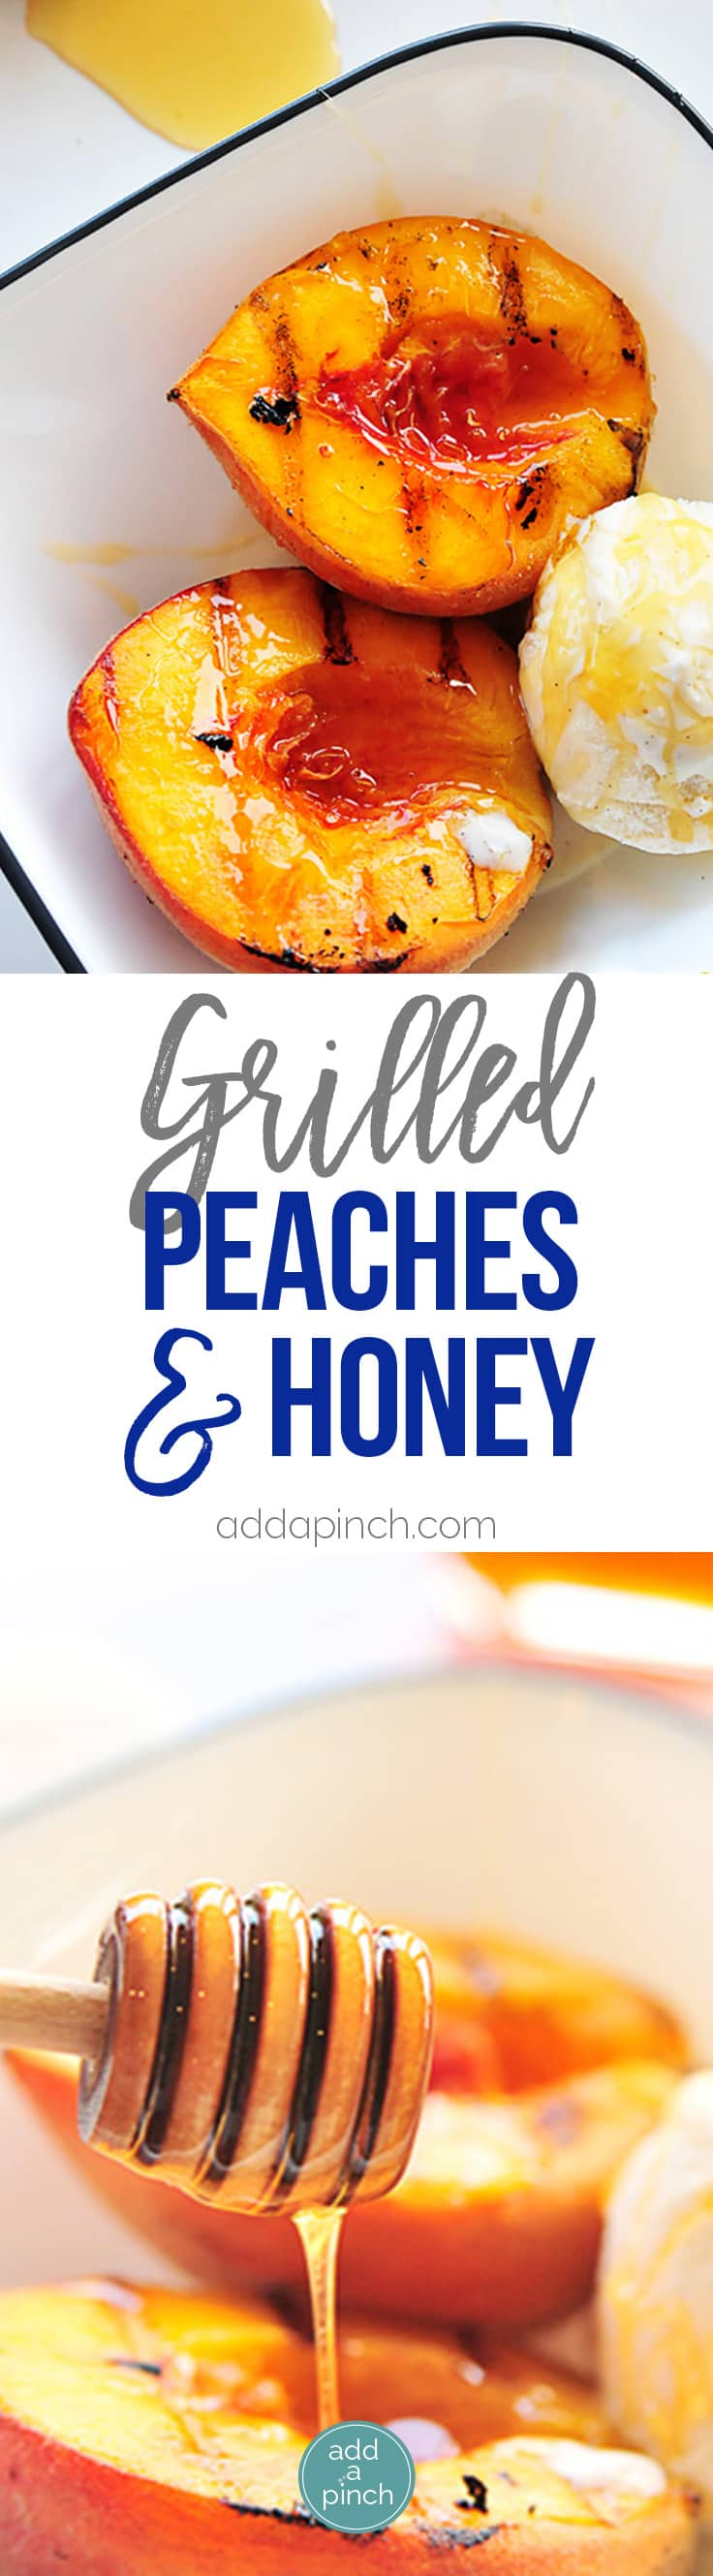 Grilled peaches with honey and ice cream makes a perfect, simple and scrumptious summertime dessert. // addapinch.com